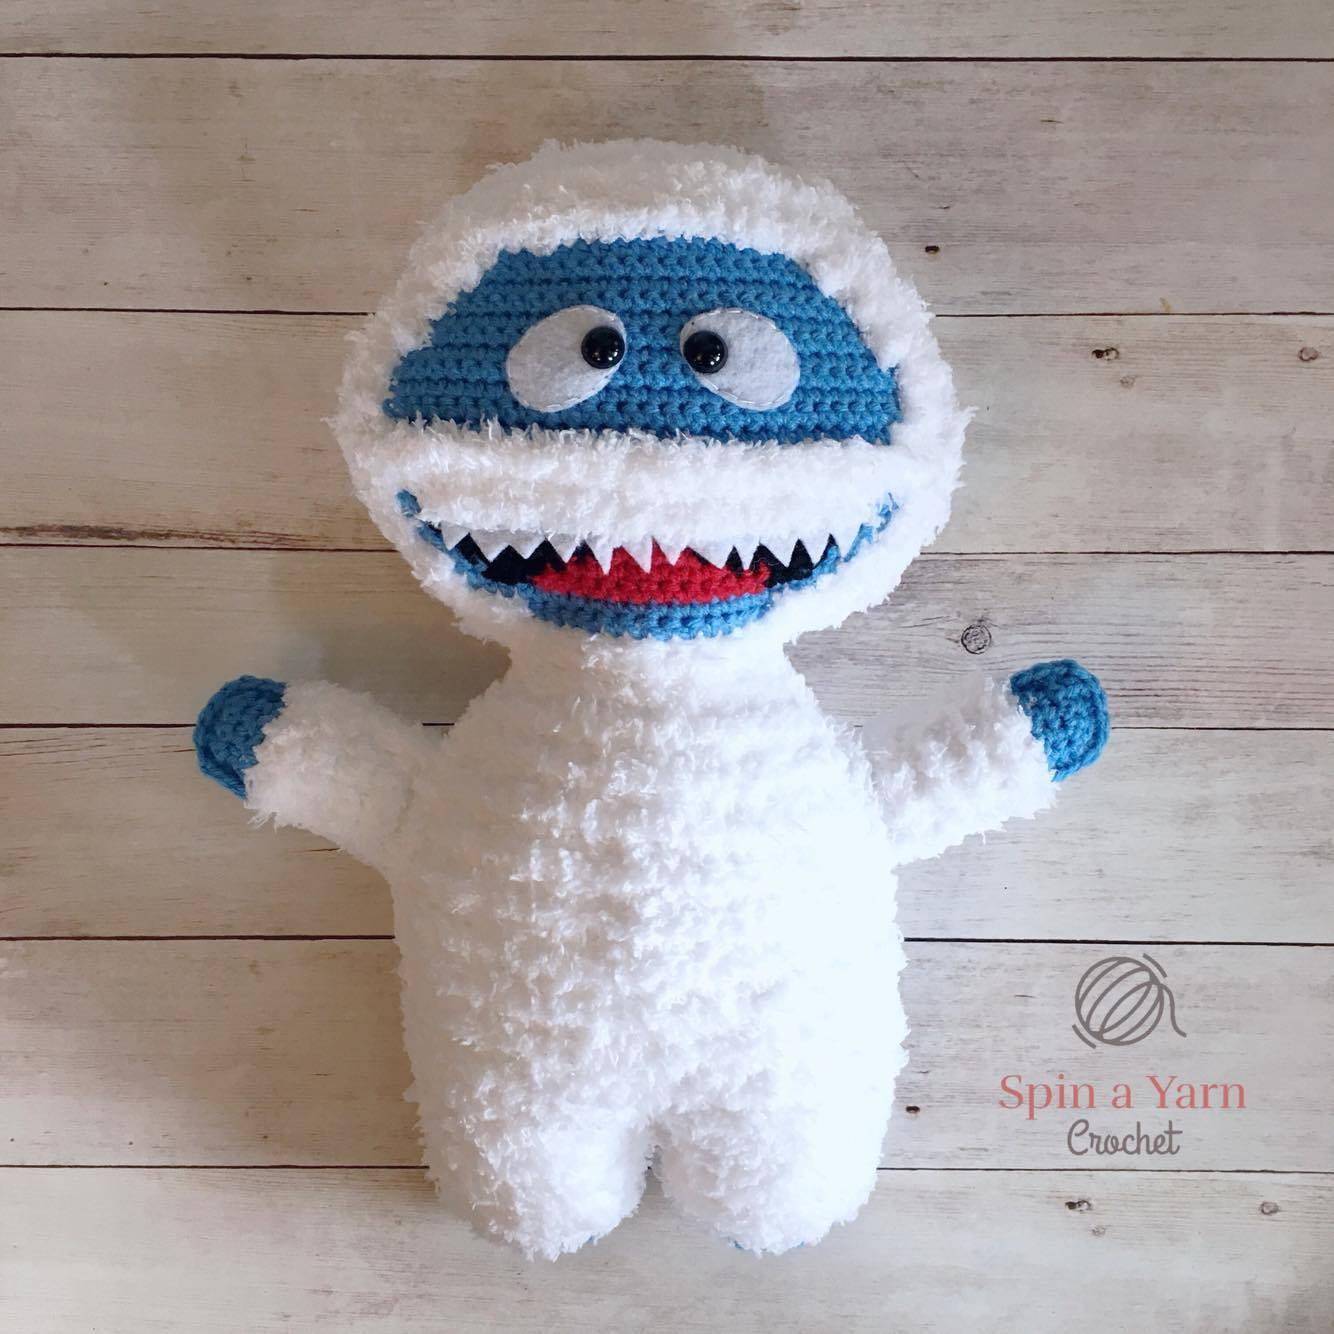 25 Free Amigurumi Snowman Crochet Patterns | HubPages | 1334x1334